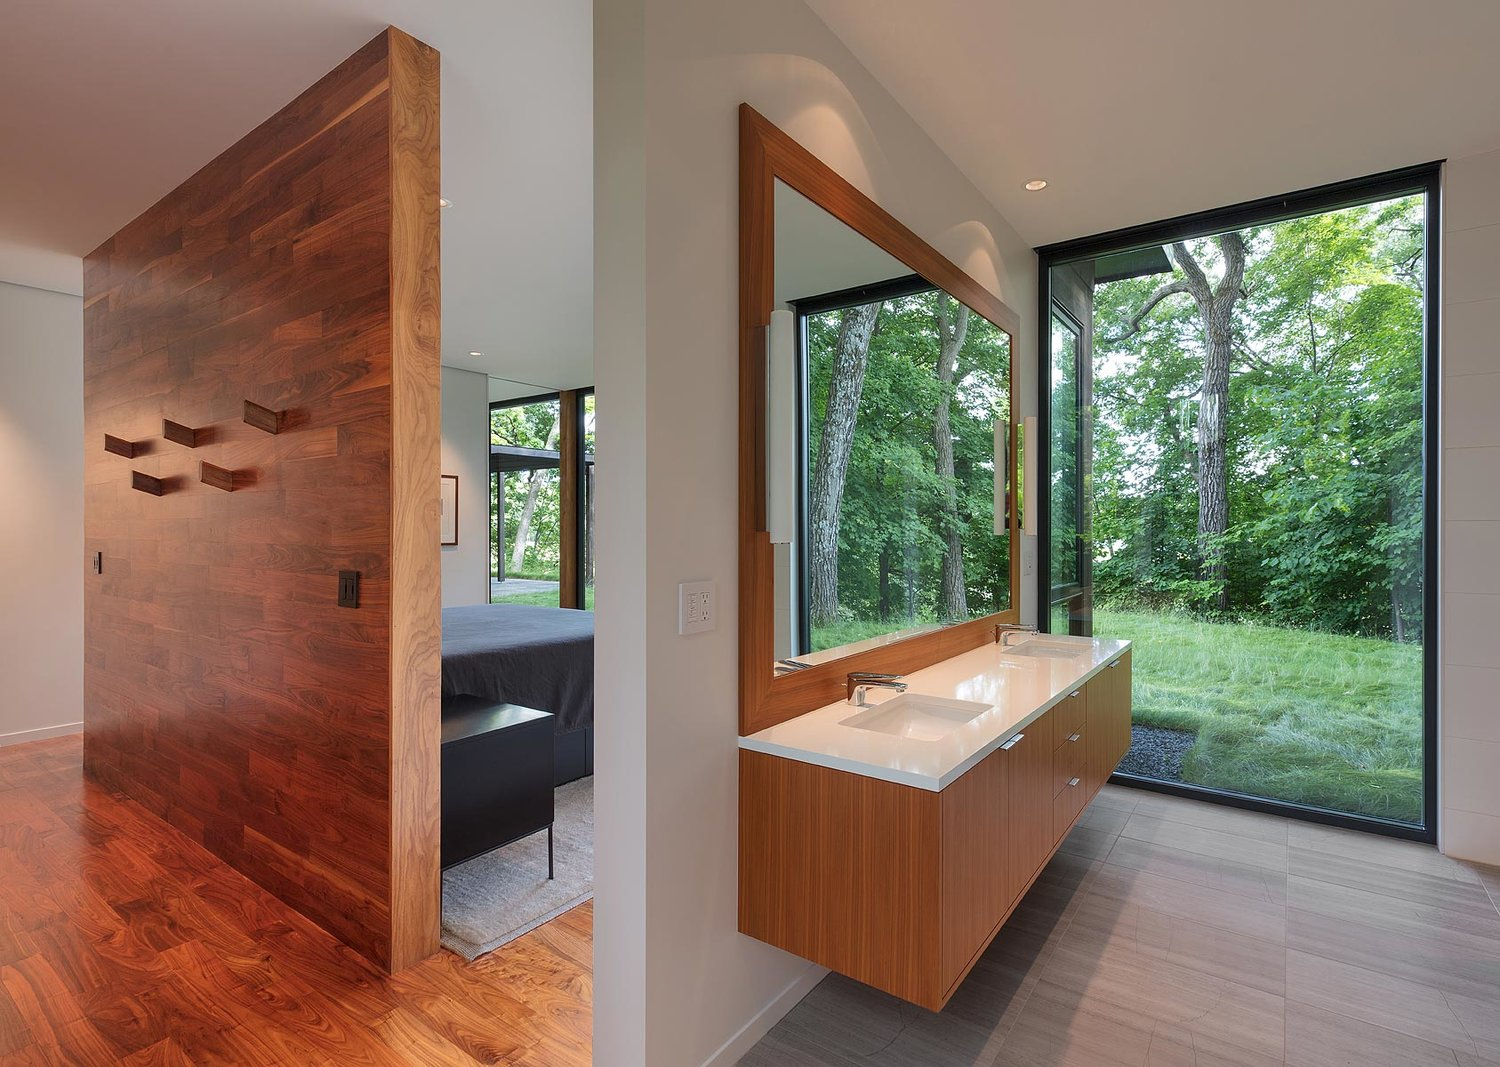 Modernist Woodland House - Altus architecture - bedroom and bathroom